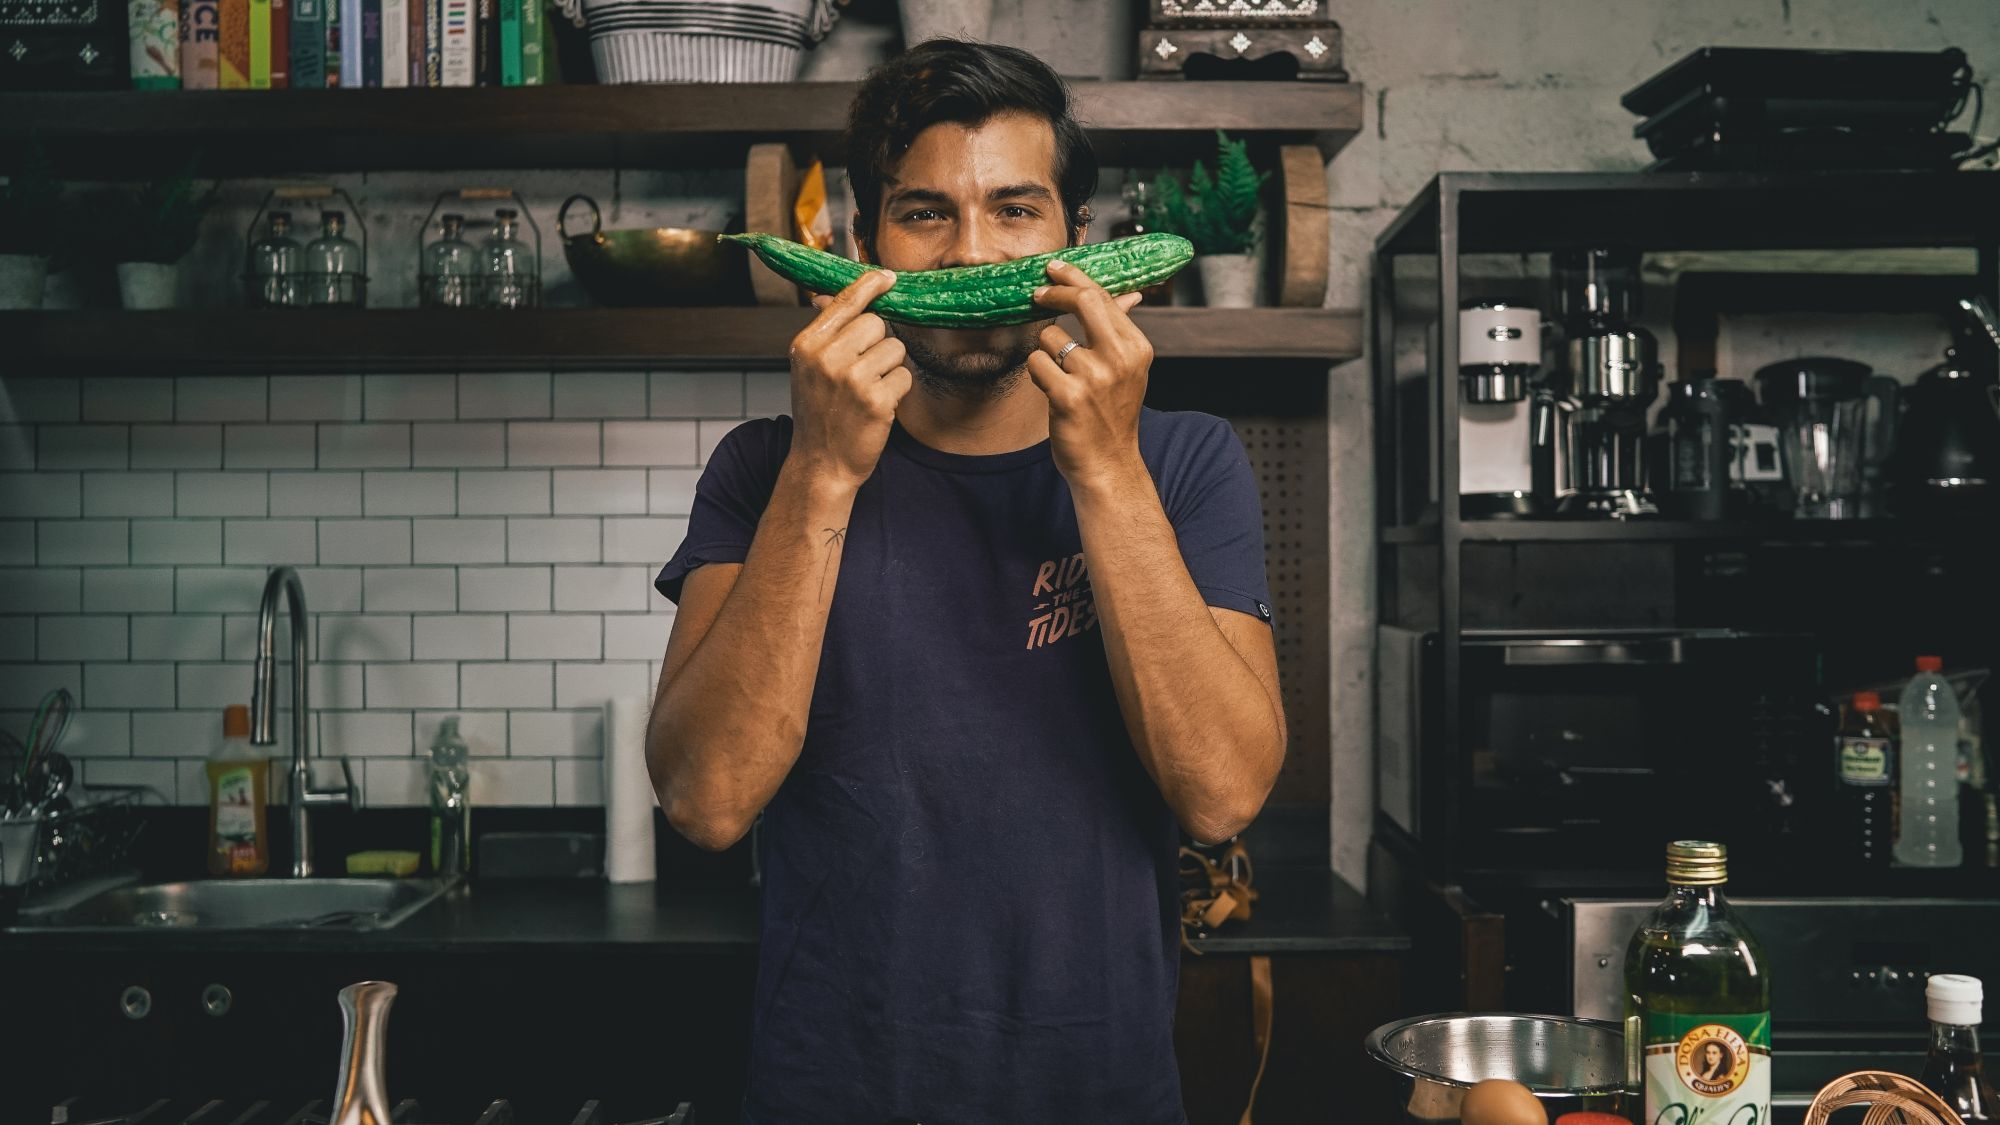 Fitness Tips: Erwan Heussaff On How To Balance Eating Well With A Healthy Lifestyle